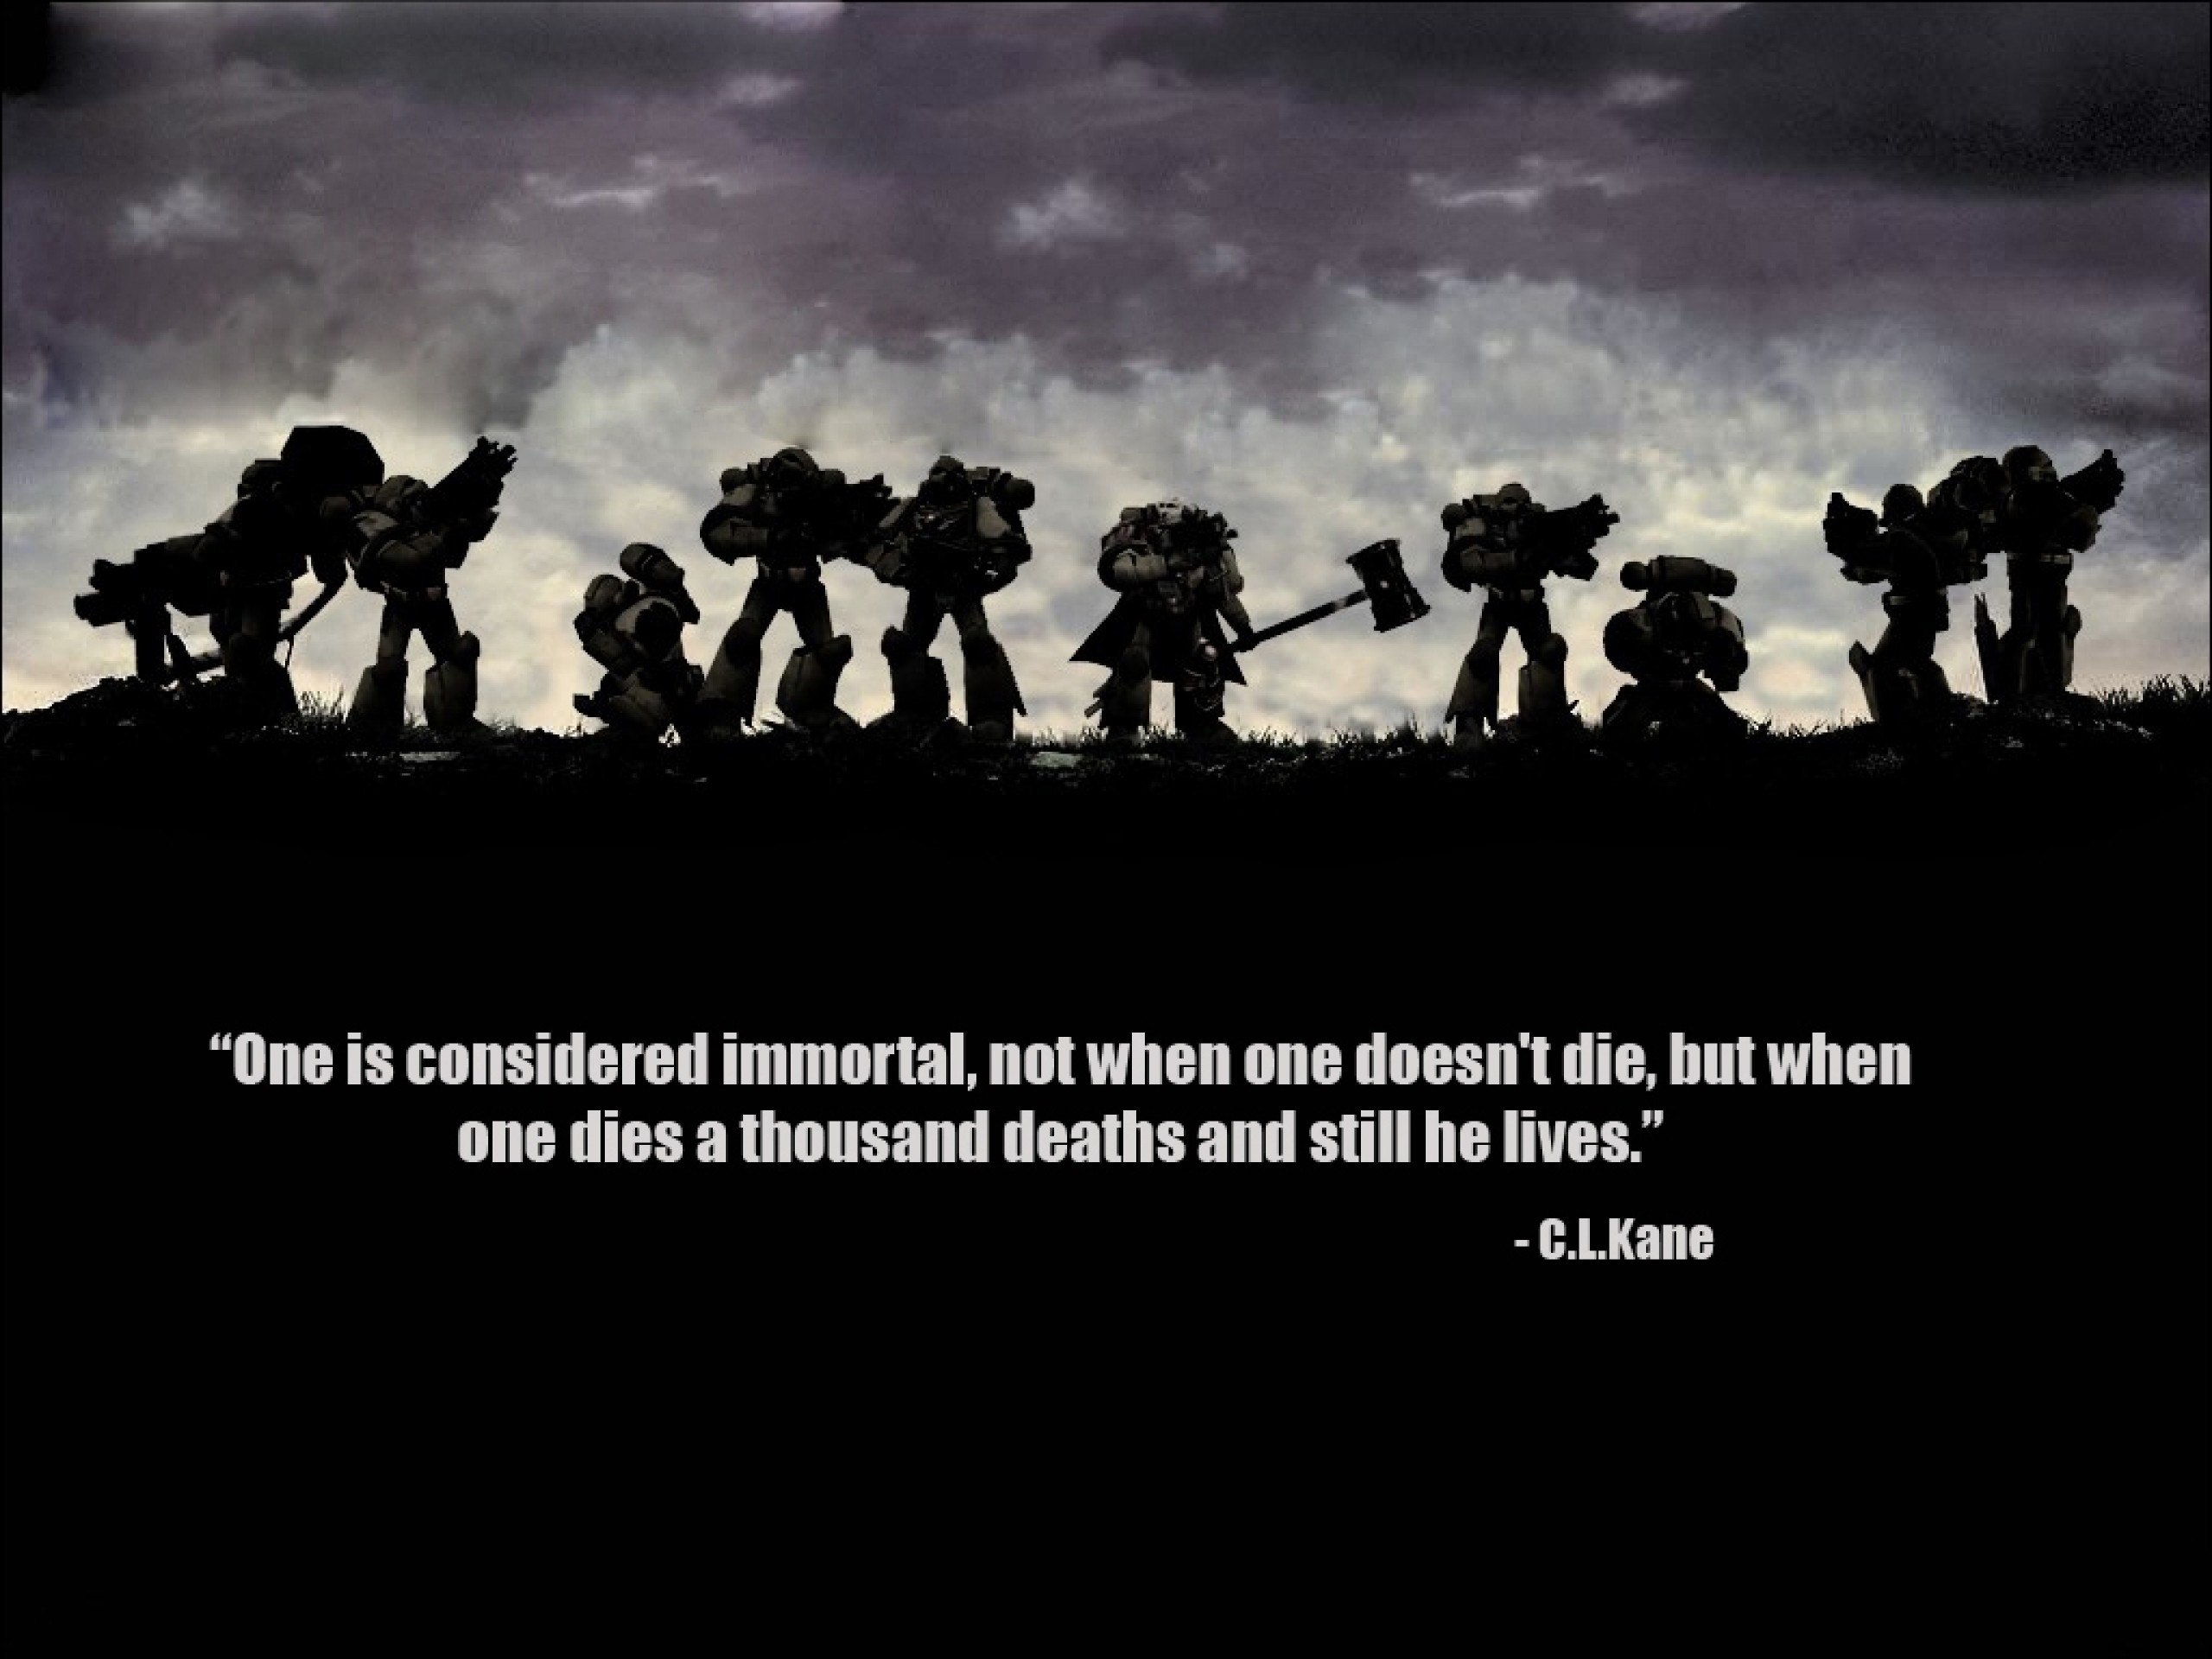 2560x1920 warhammer quotes space marines imperial fists 1024x768 wallpaper Wallpaper  HD